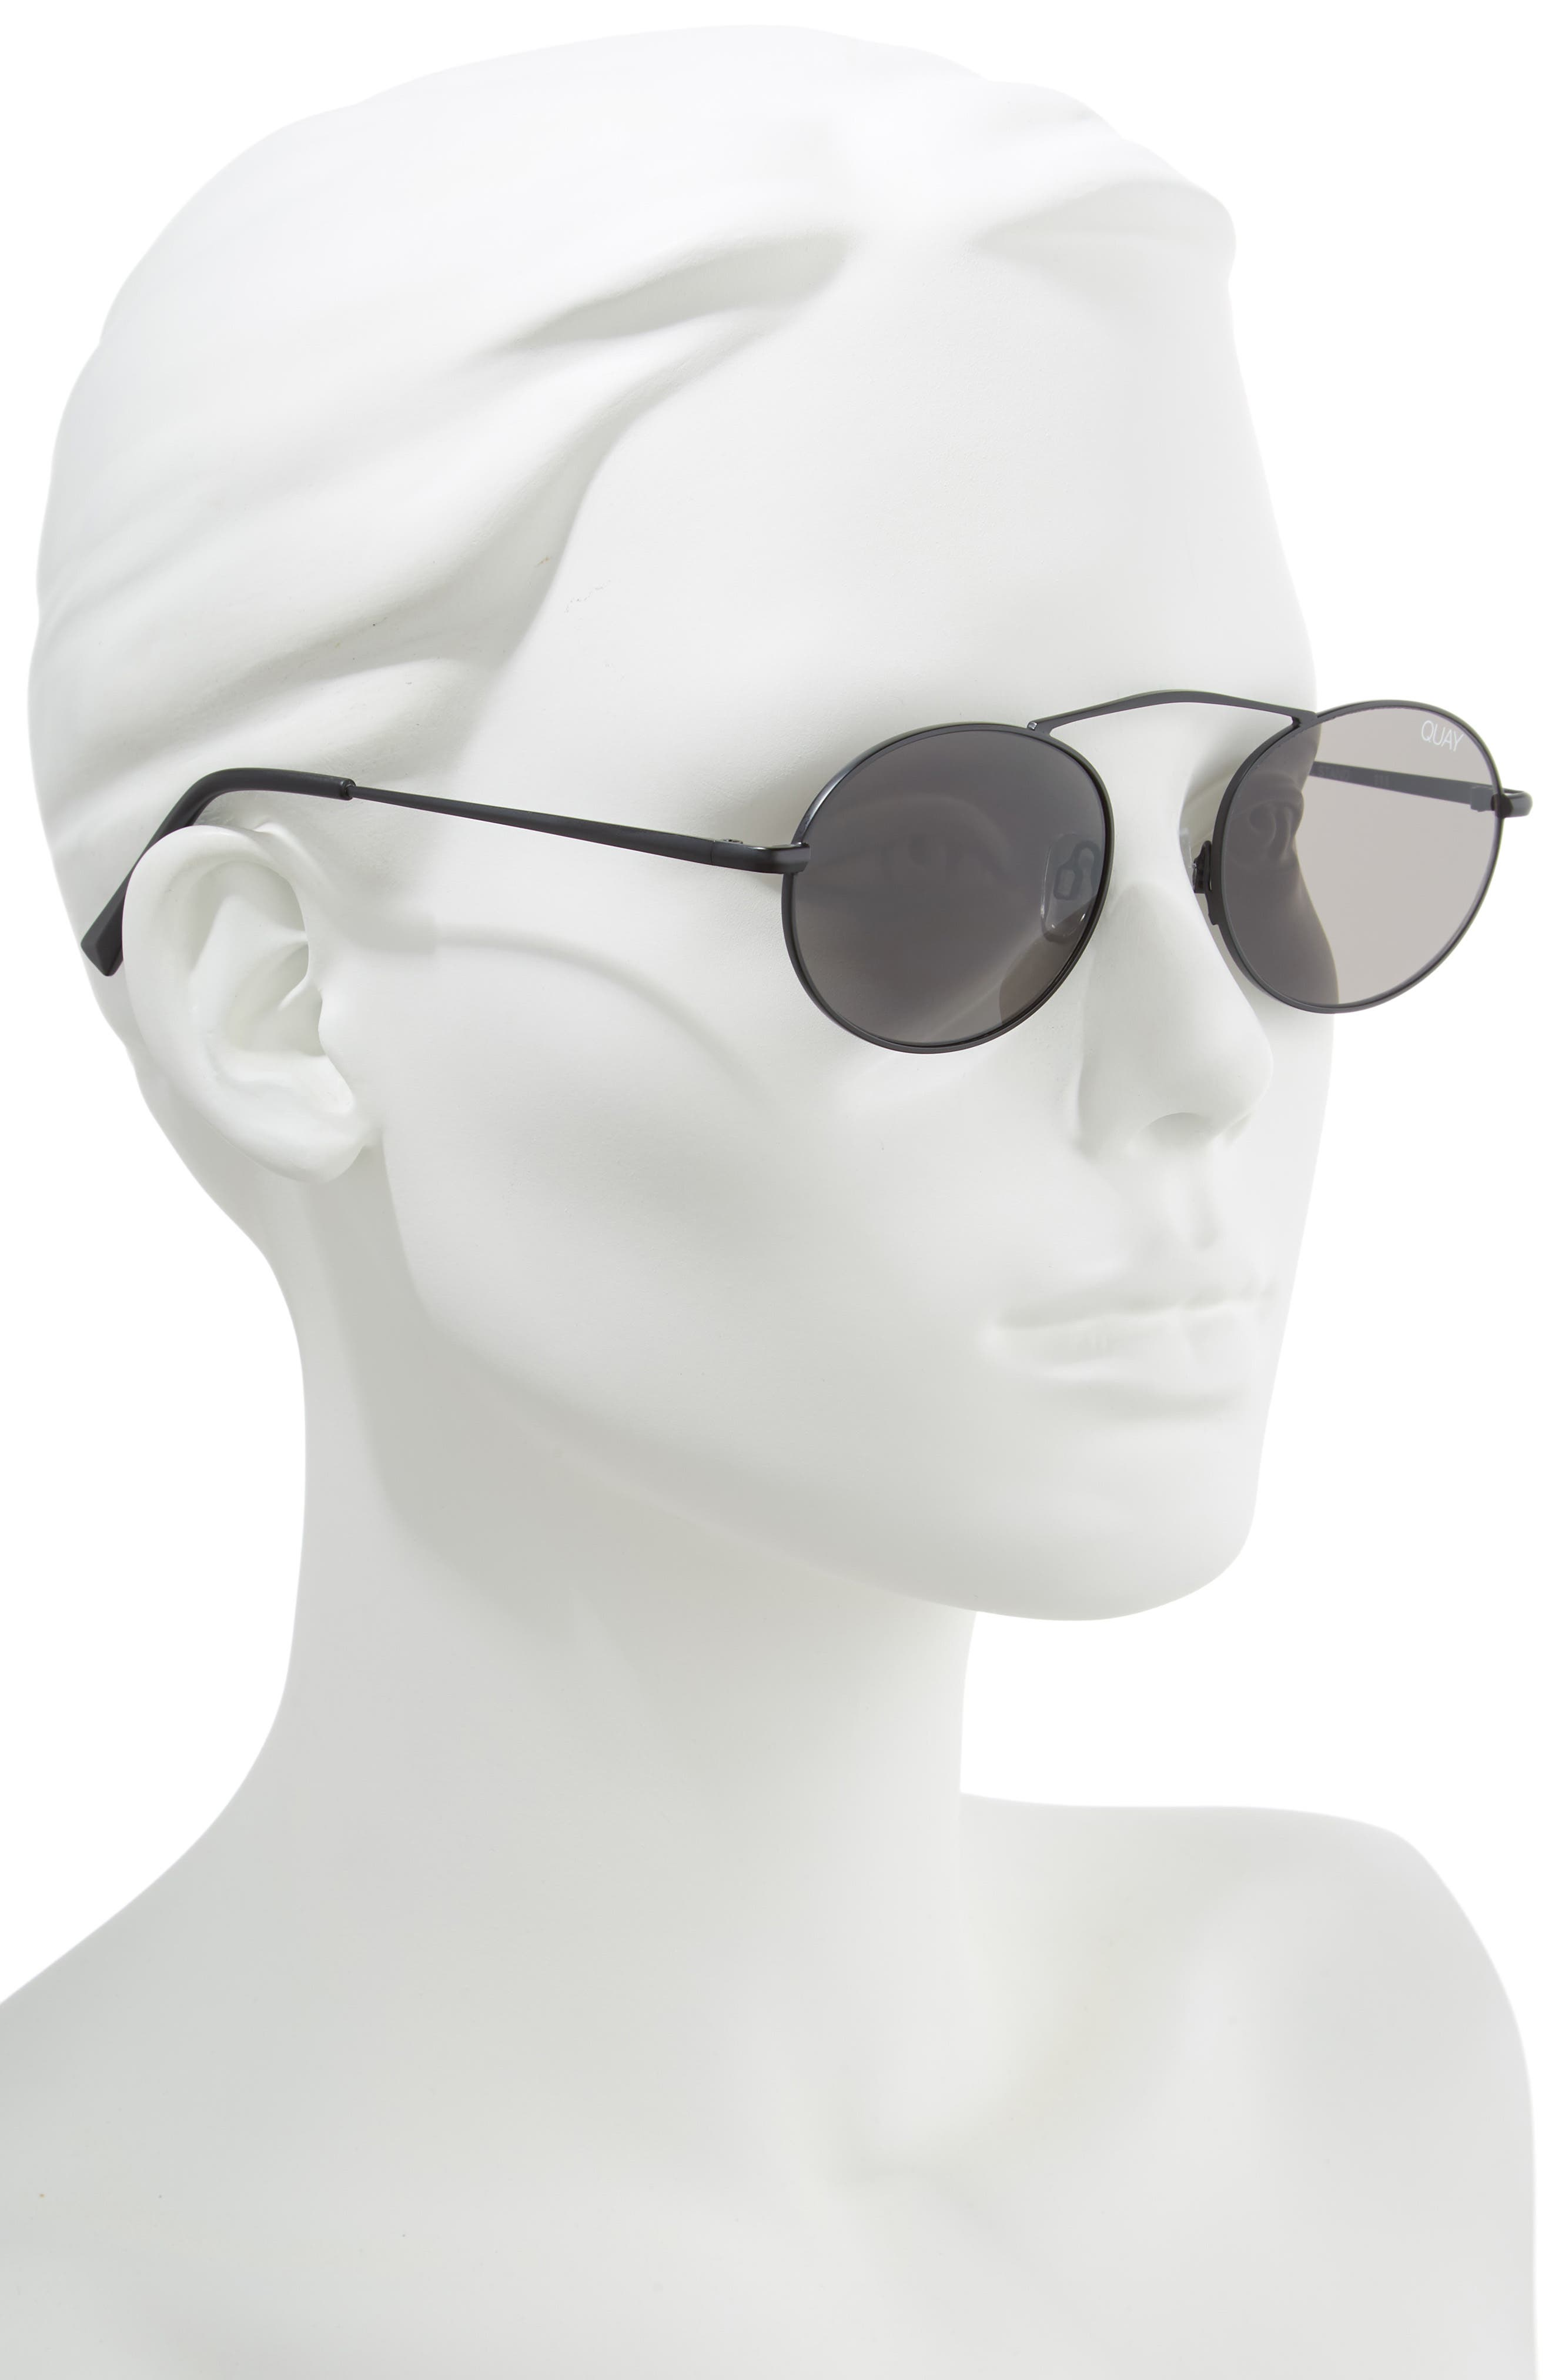 x Finders Keepers Final Stand 53mm Round Sunglasses,                             Alternate thumbnail 2, color,                             BLACK/ SMOKE